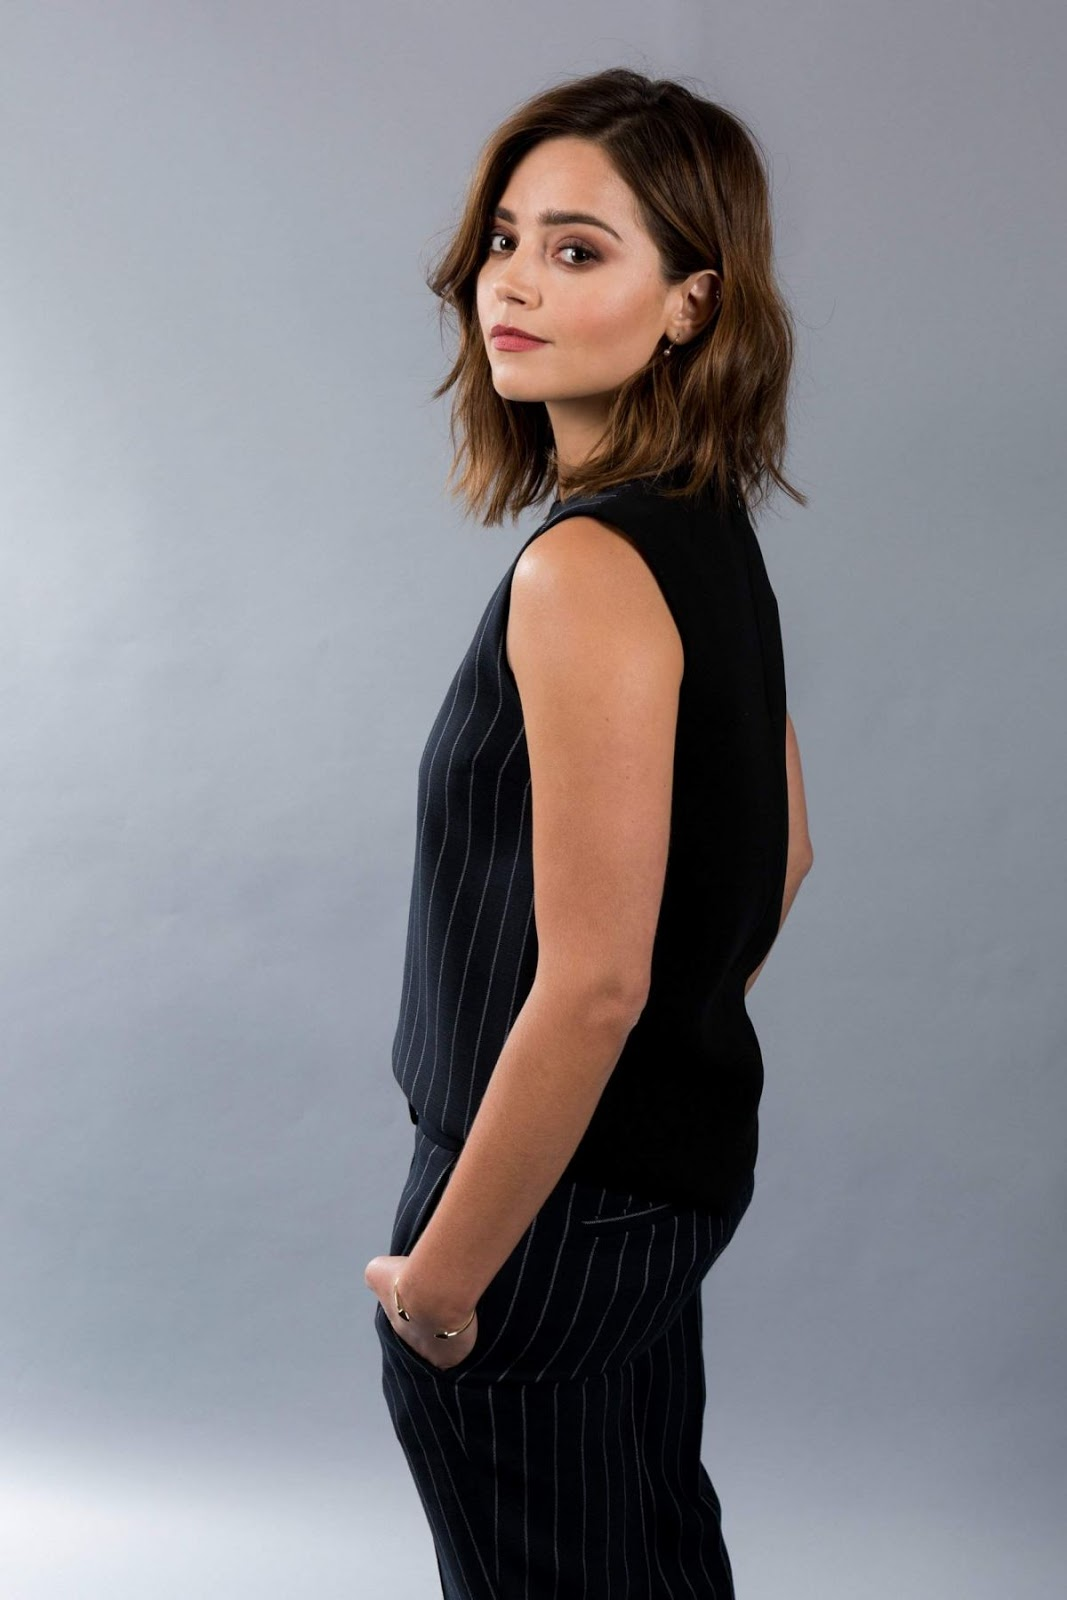 Full 4K and HD Photos of ' Me Before You' actress Jenna Louise Coleman TCA Portraits 2016